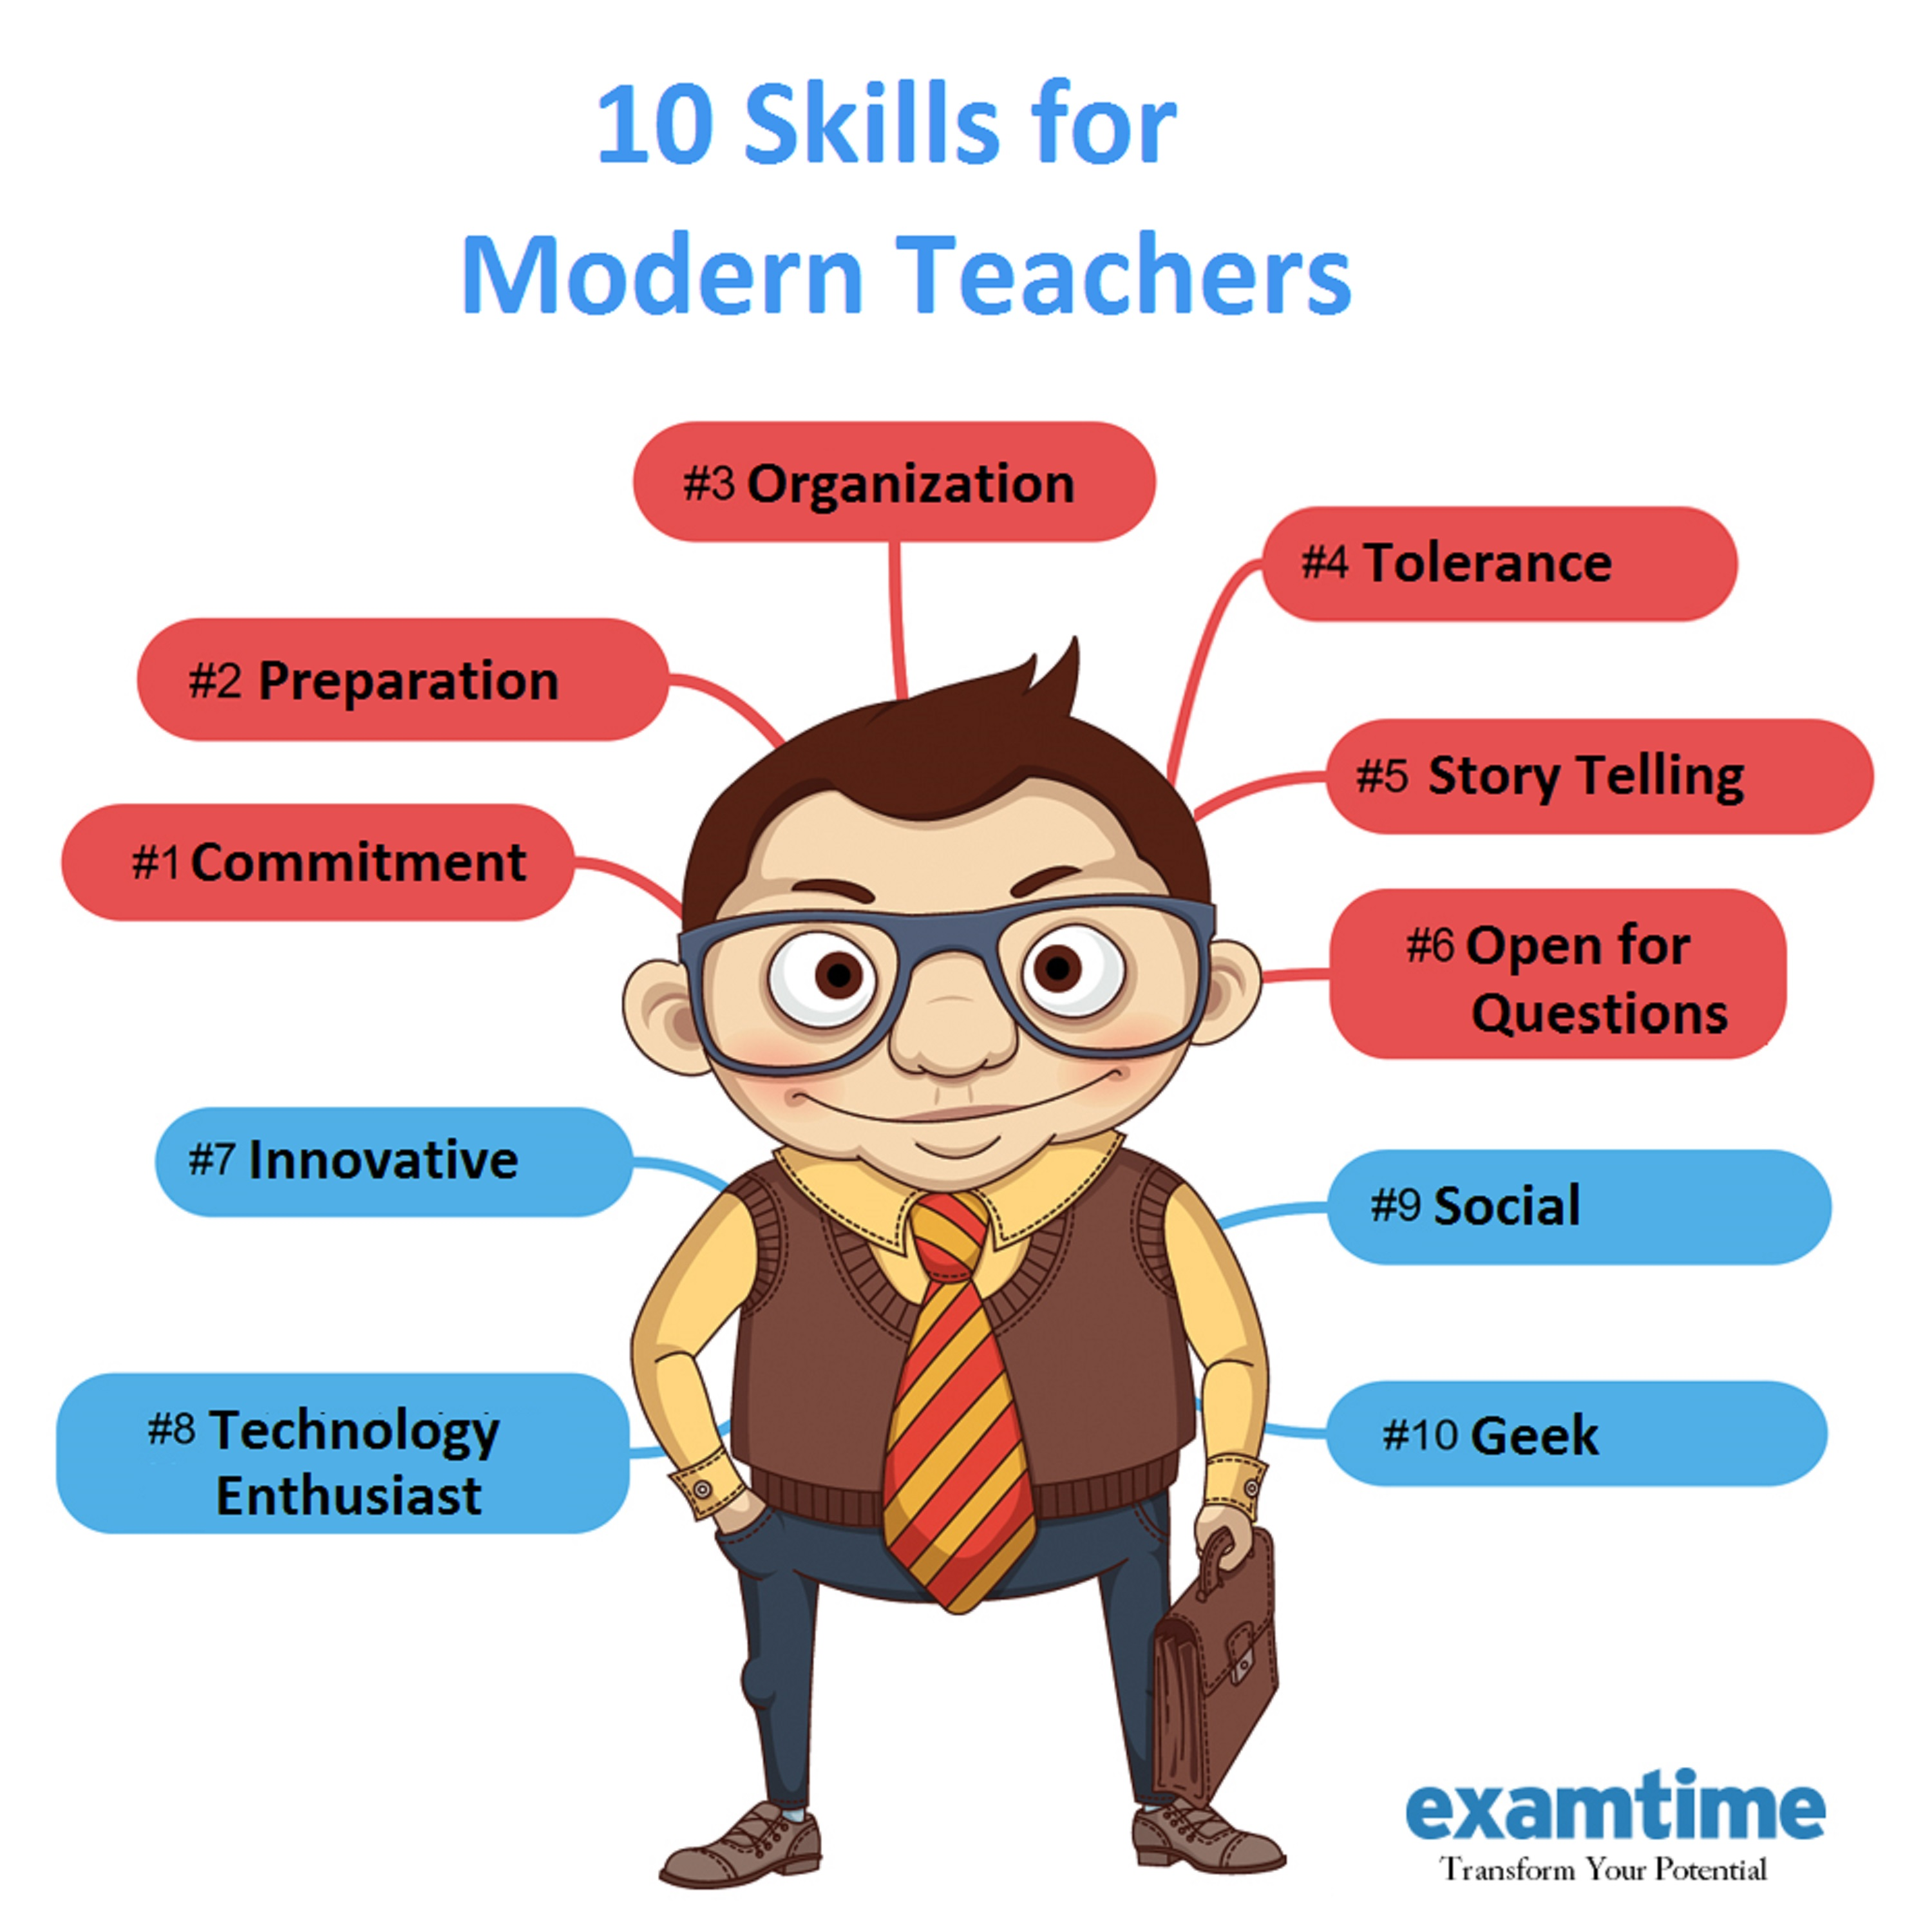 the modern teaching skills examtime